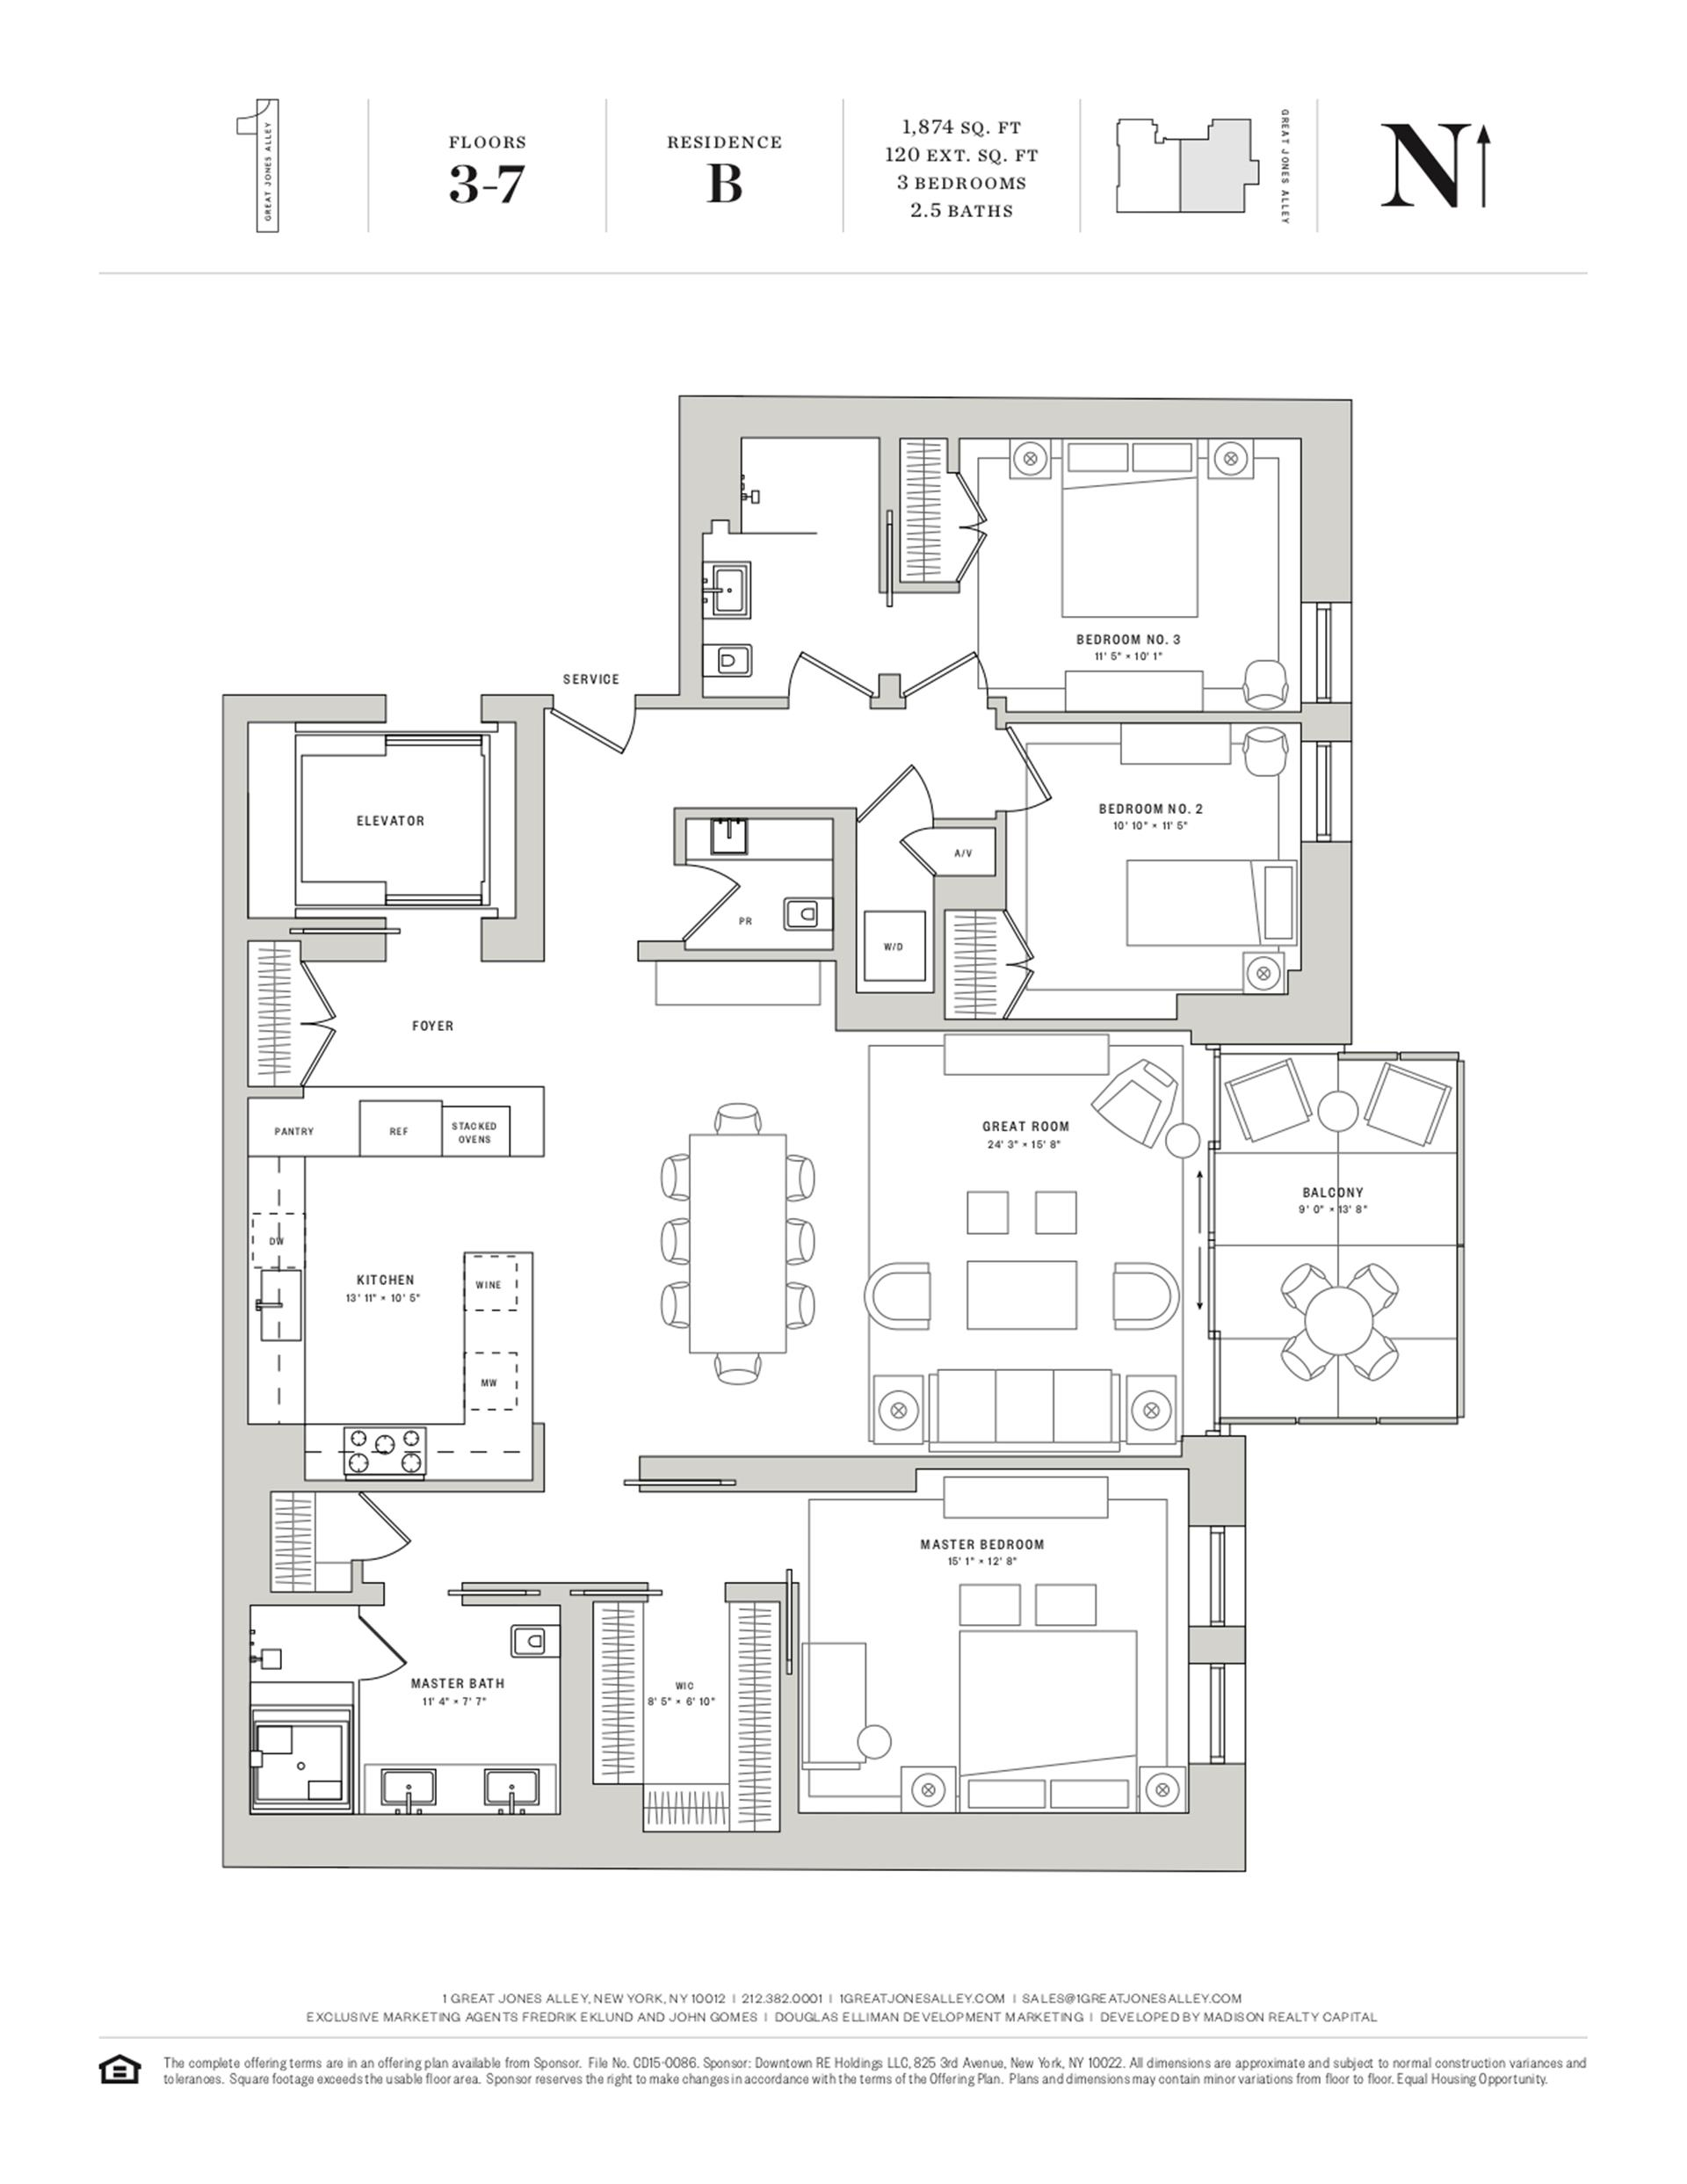 Floor plan of 1 Great Jones Alley, 5B - NoHo, New York